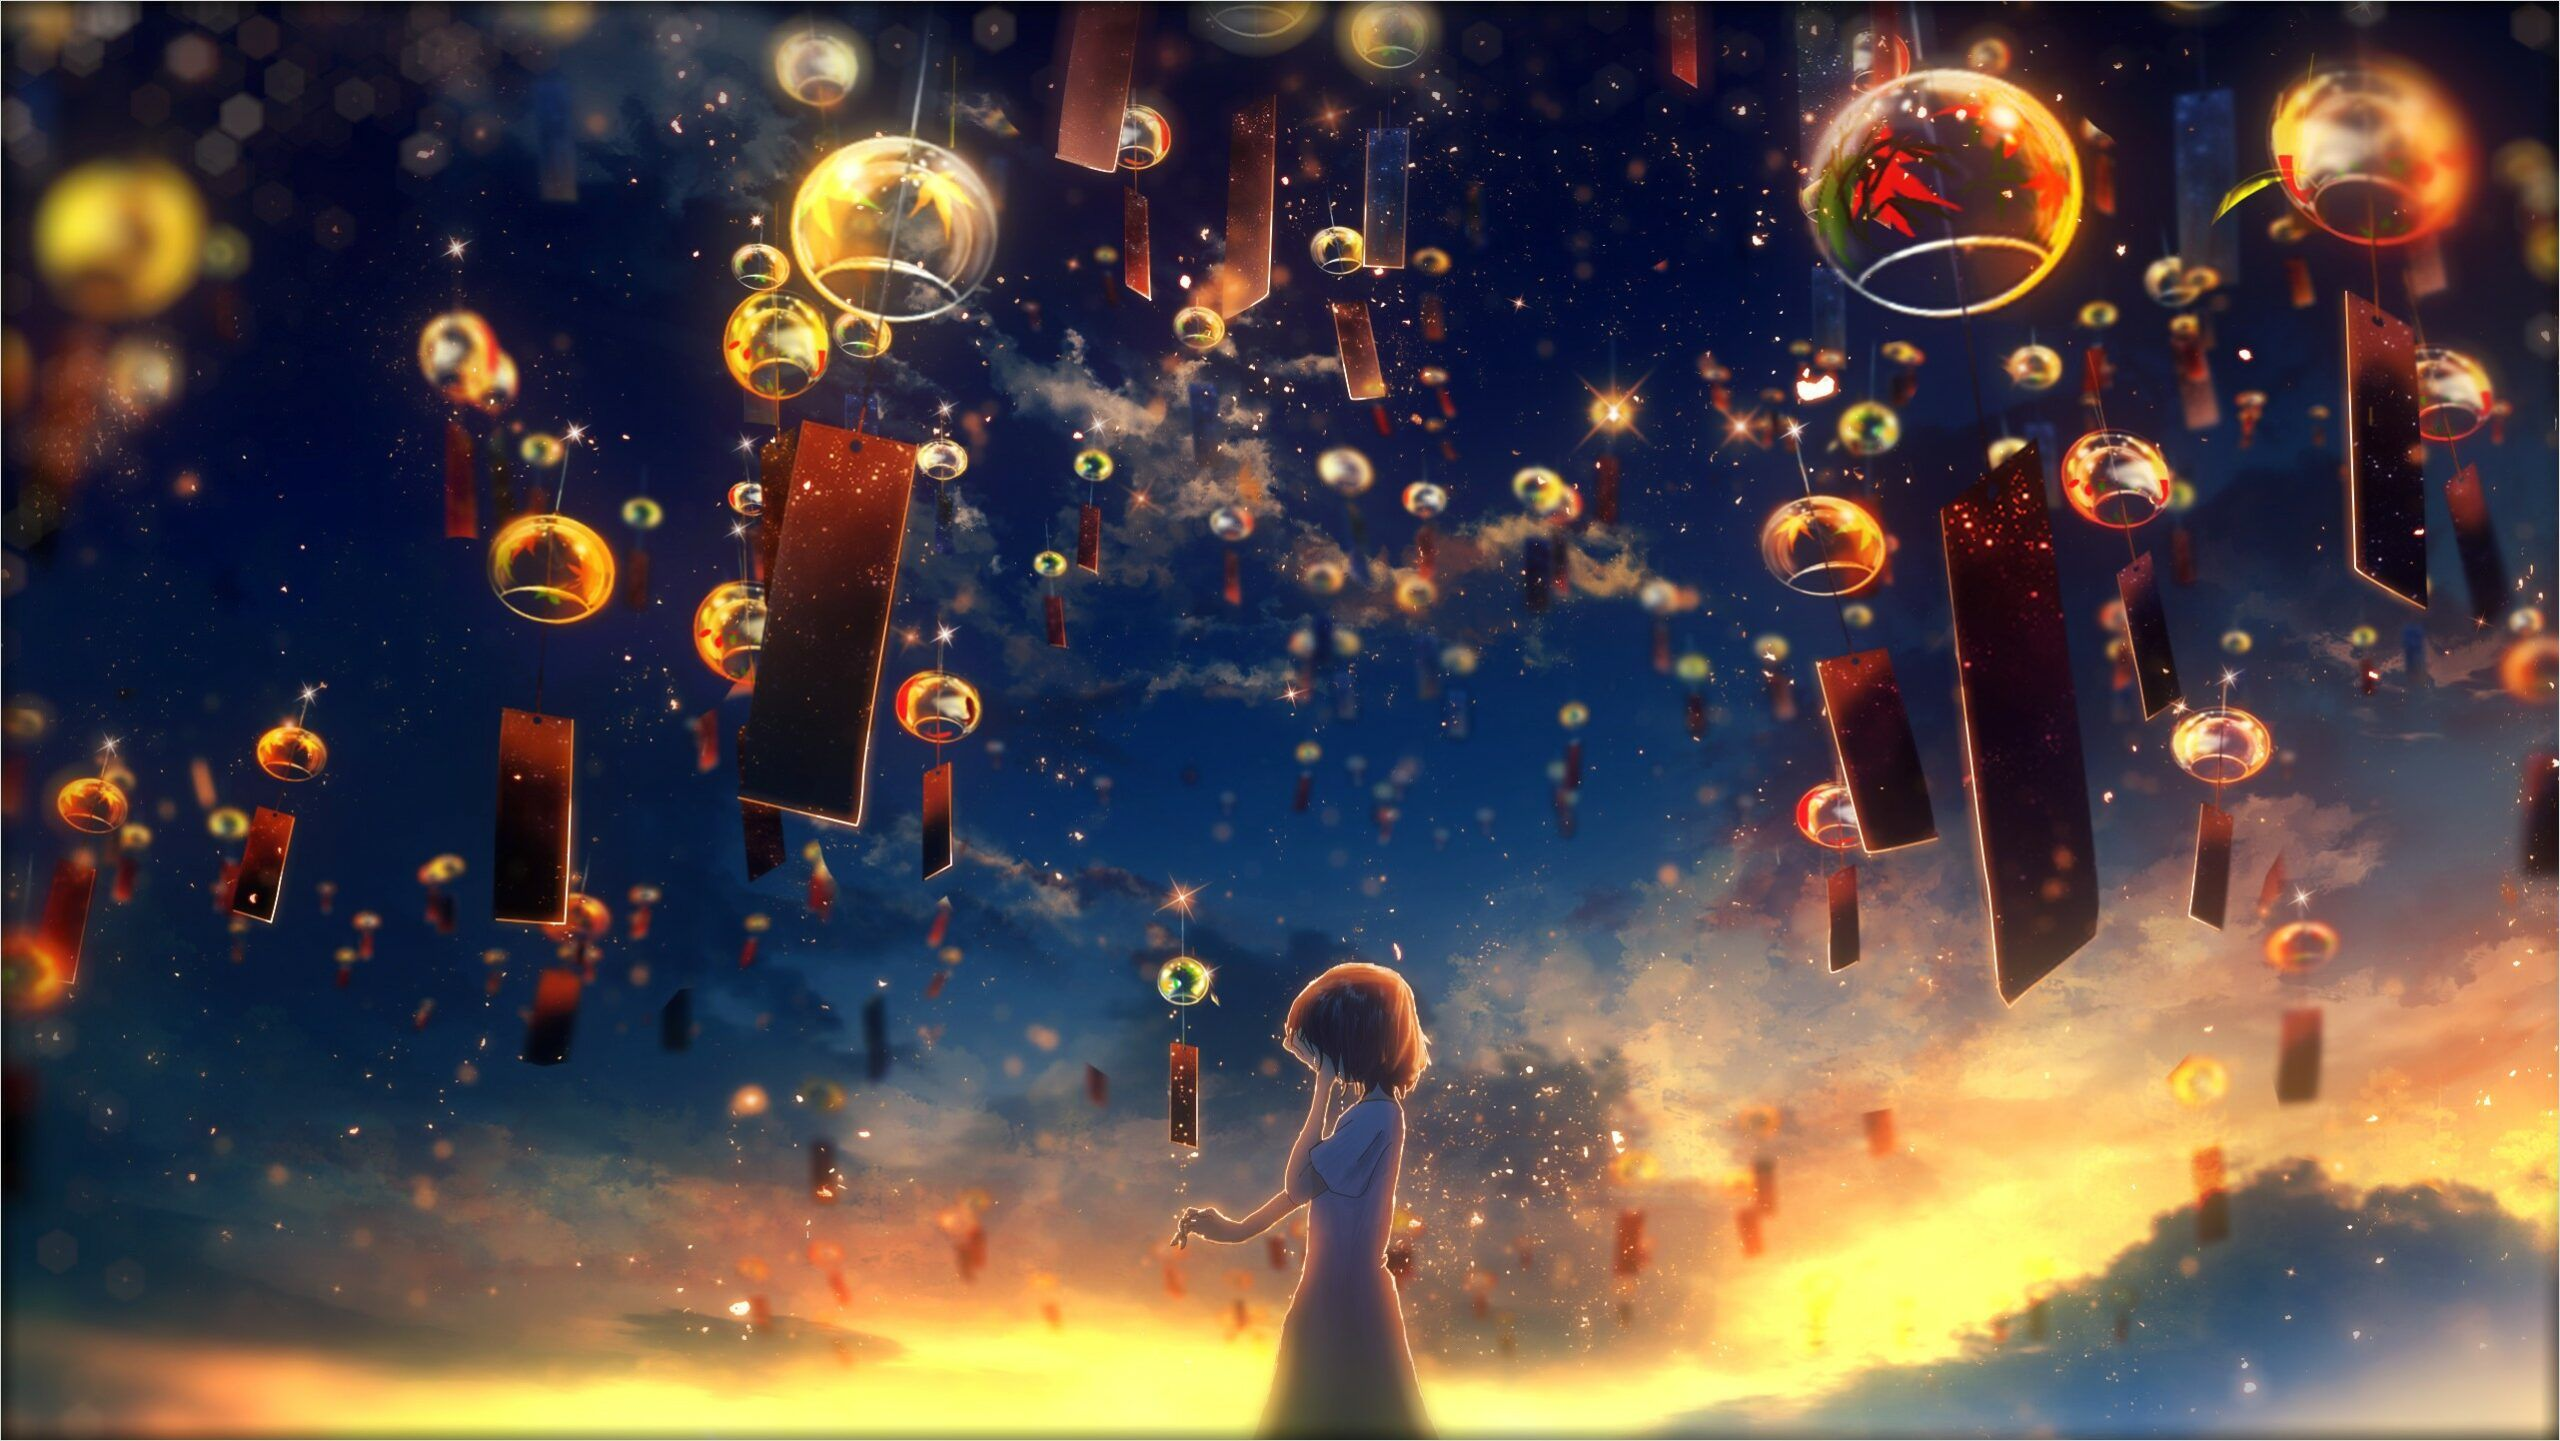 4k Animated Wallpaper Dream Hd Anime Wallpapers Anime Backgrounds Wallpapers Sky Anime